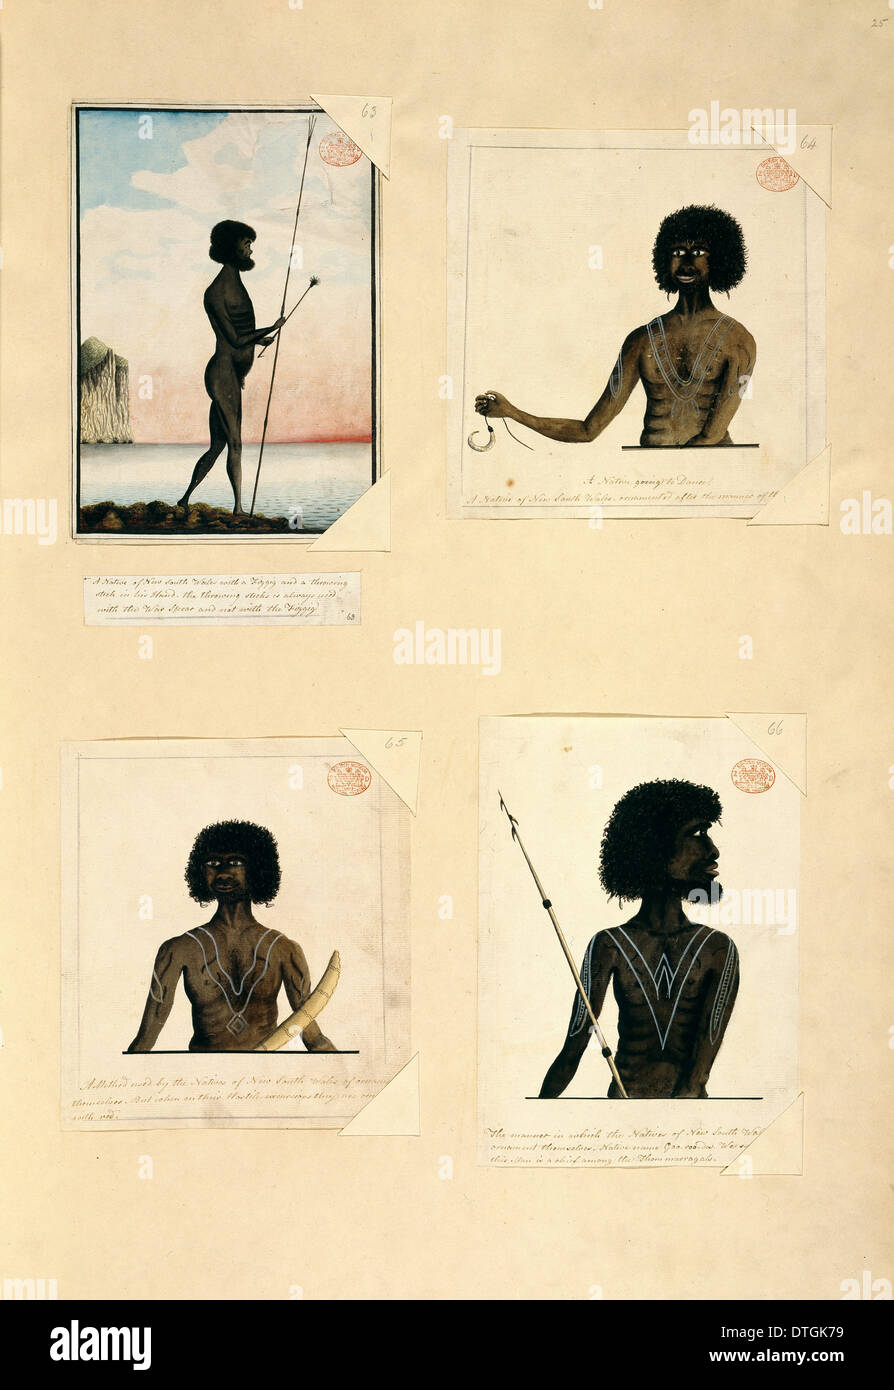 Drawings 54-57 from the Watling Collection - Stock Image